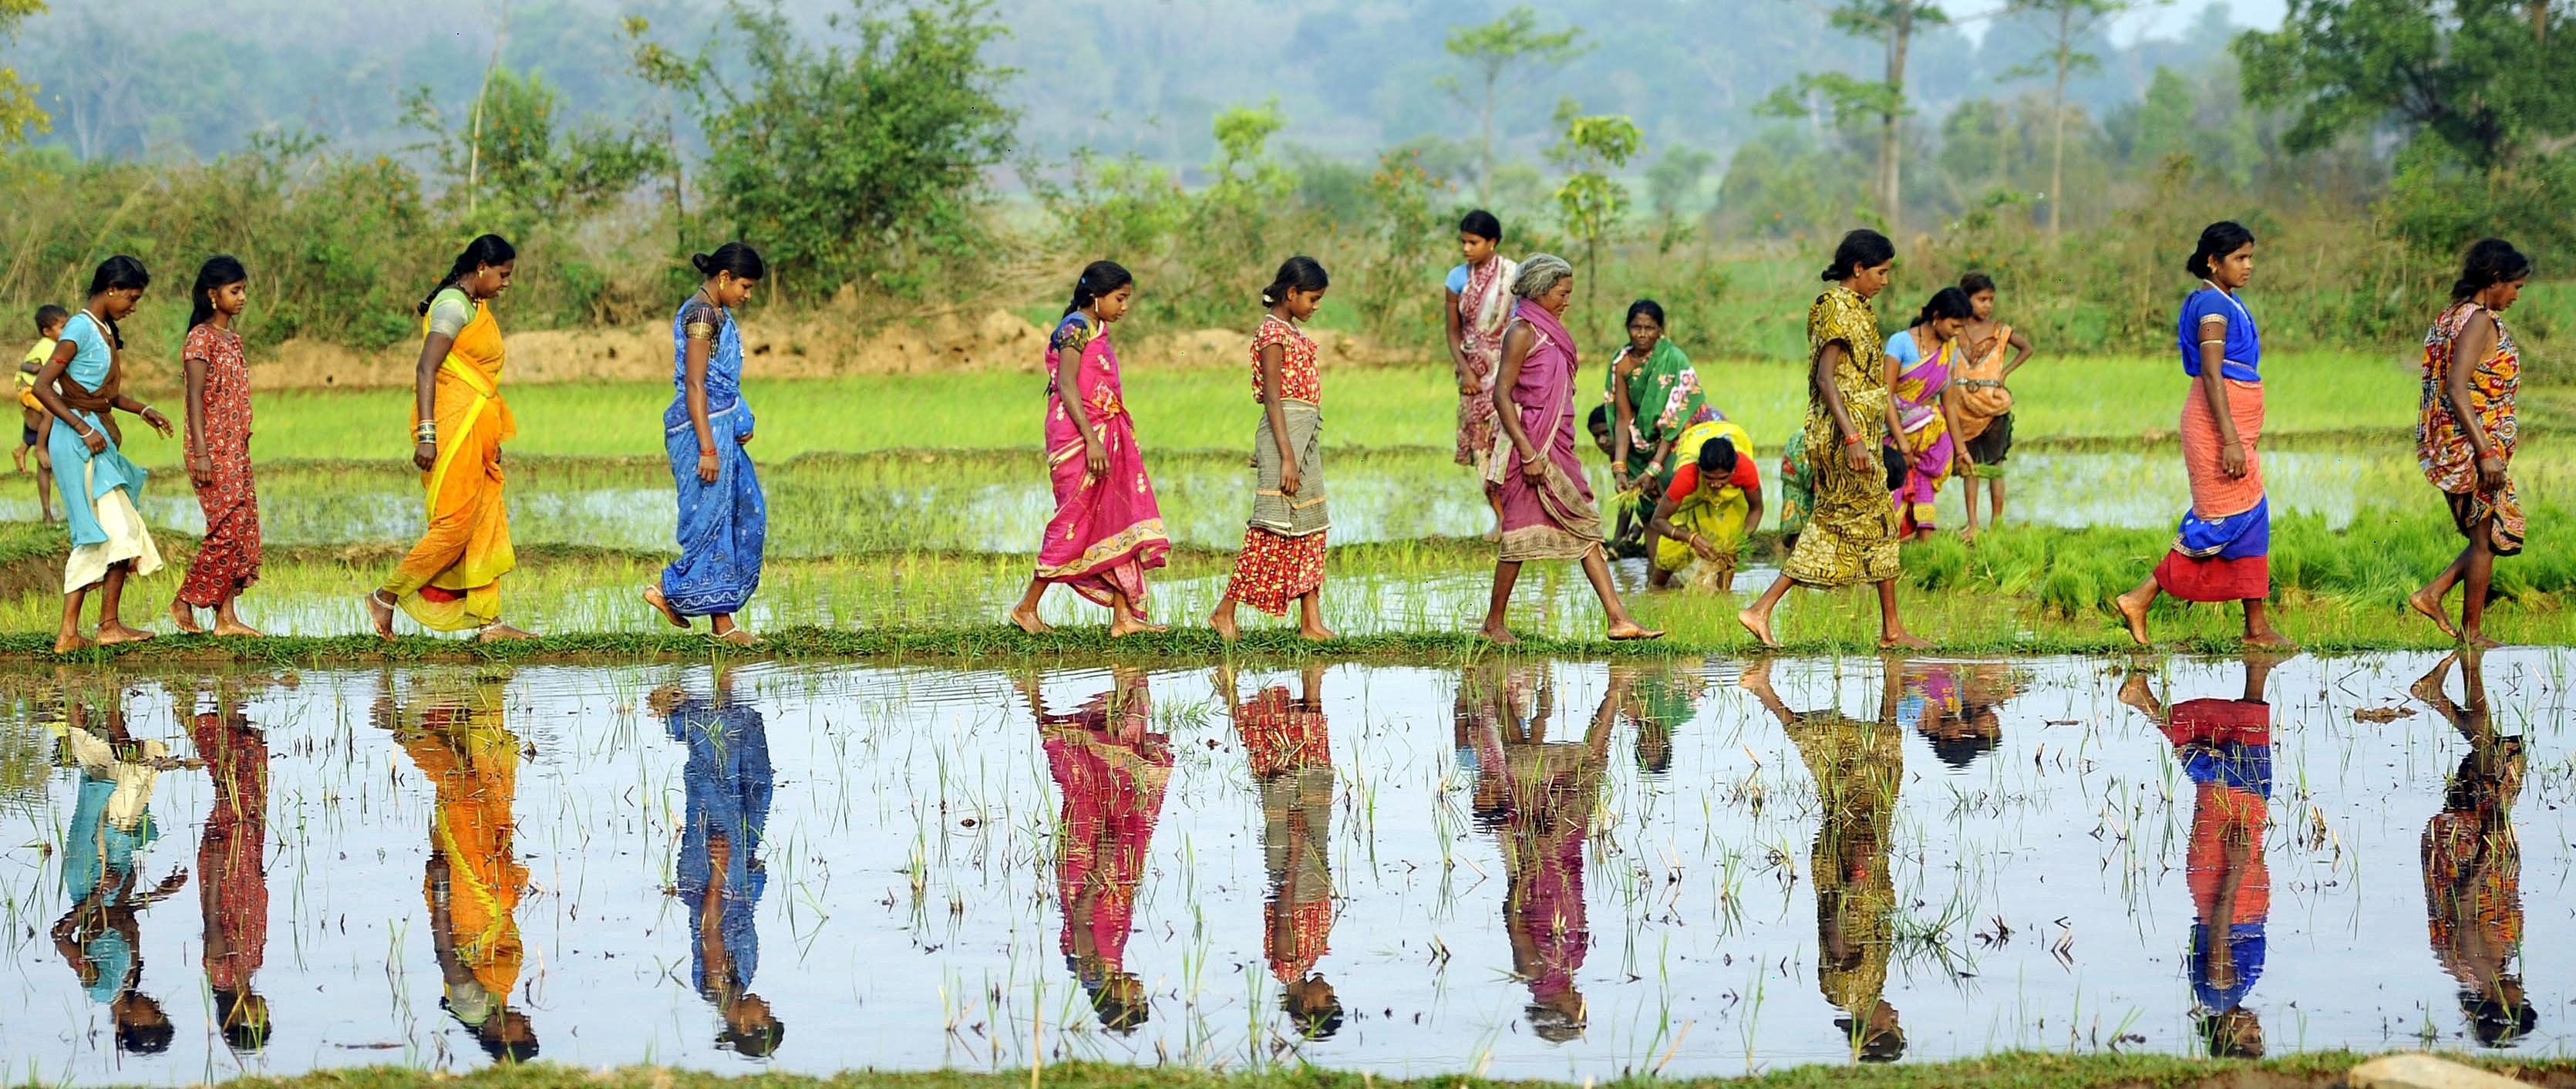 rural development essays india Free rural areas papers, essays  the rural women of india new economic opportunities and threats are opened up towards rural development rural areas in.